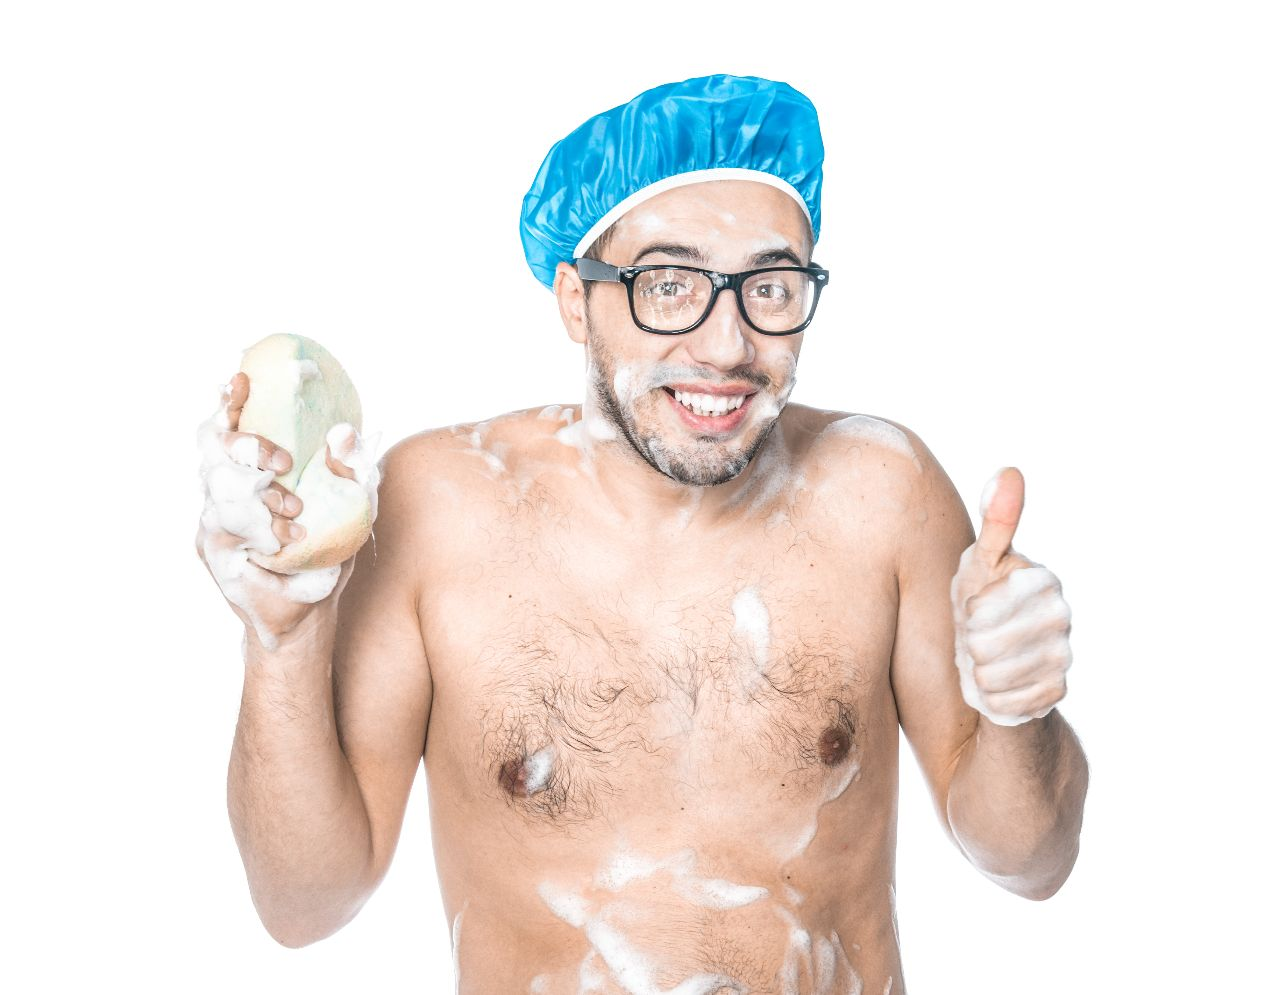 Man with blue cap taking a shower, left thumb up and holding a sponge in his right hand.